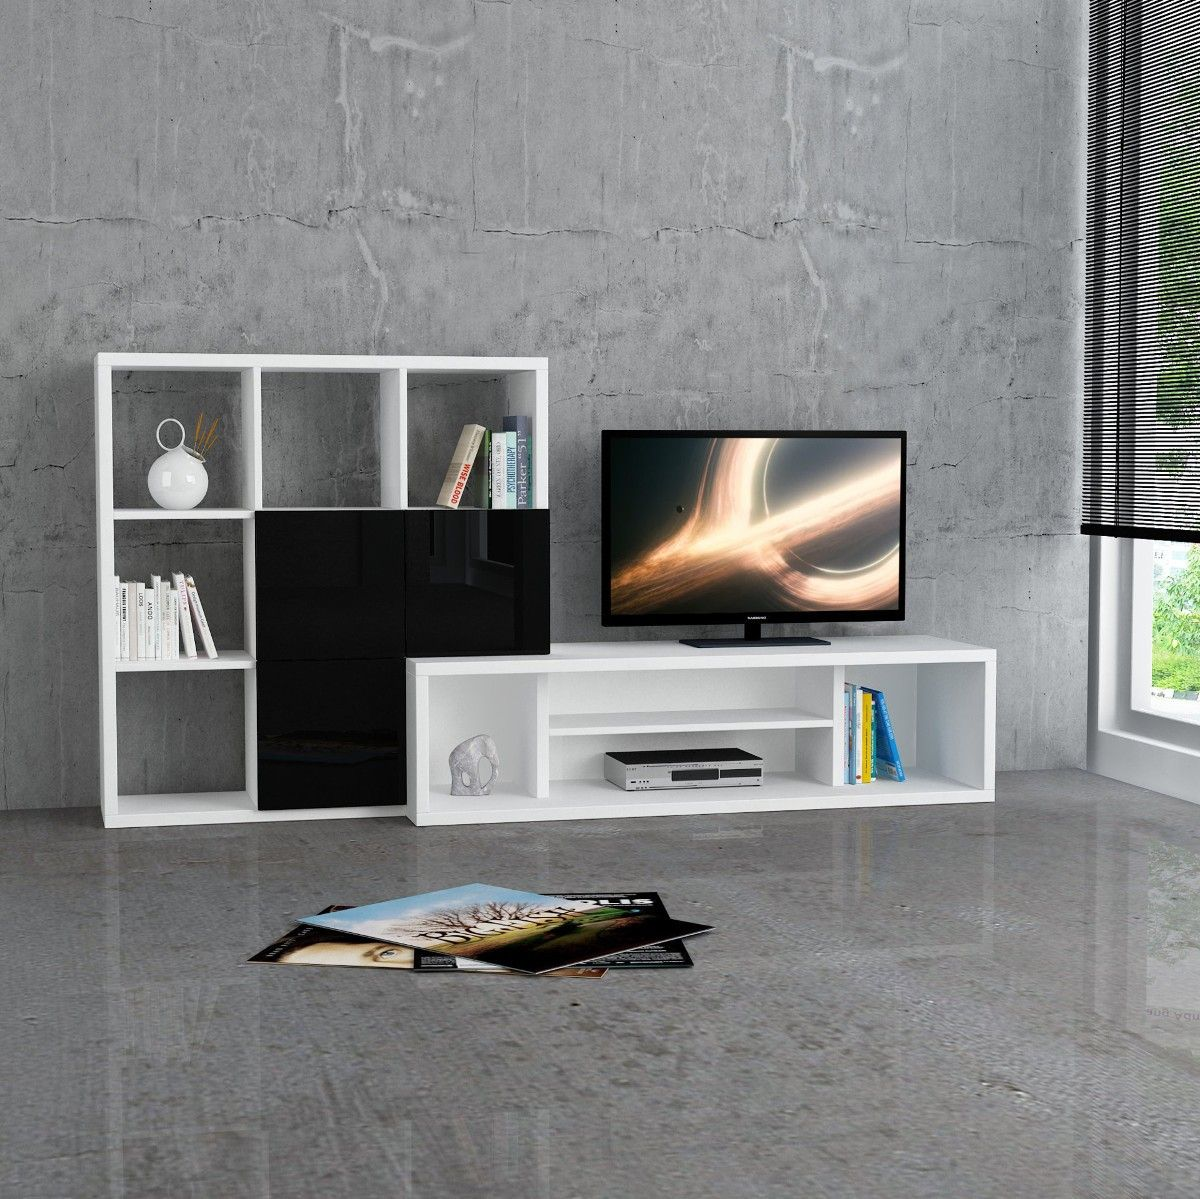 Starring mobile porta tv fisso design moderno in legno - Porta tv design moderno ...